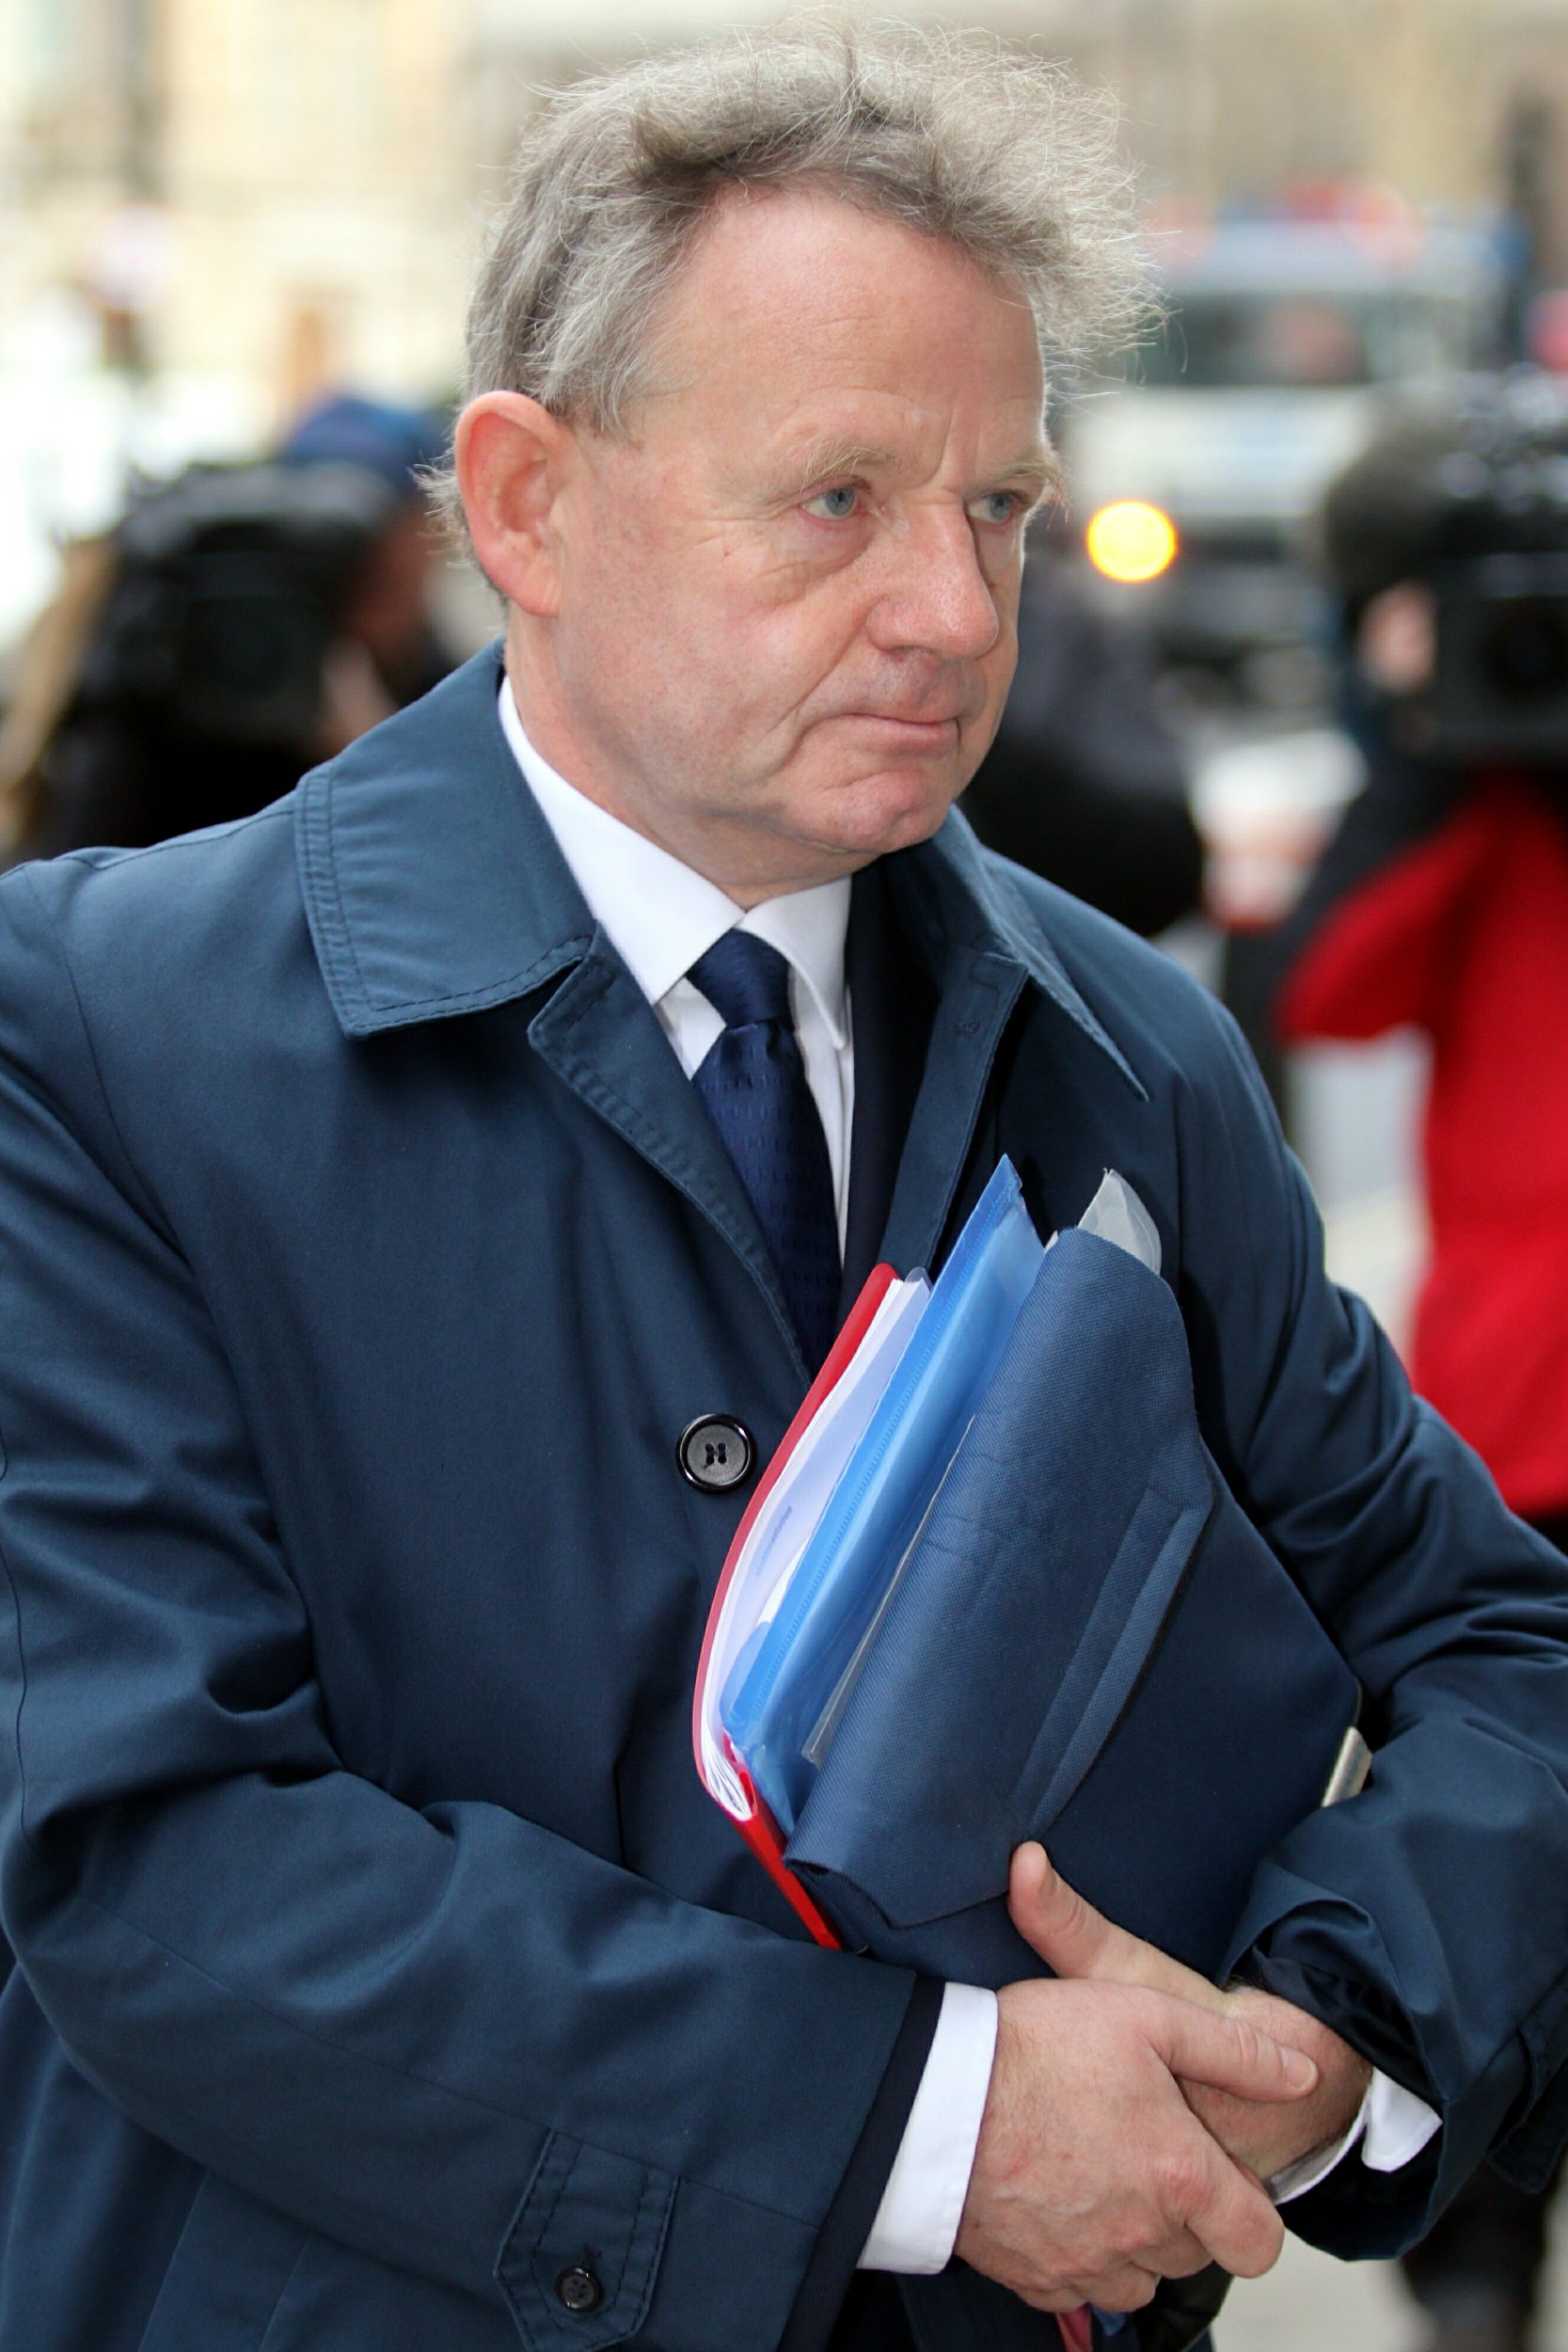 Pic shows Andy Hill, arriving at the Old Bailey this morning. Today the defence is due to start in the trial of pilot Andrew Hill accused of 11 counts of manslaughter over Shoreham Airshow disaster. SEE STORY CENTRAL NEWS. 020 72360116